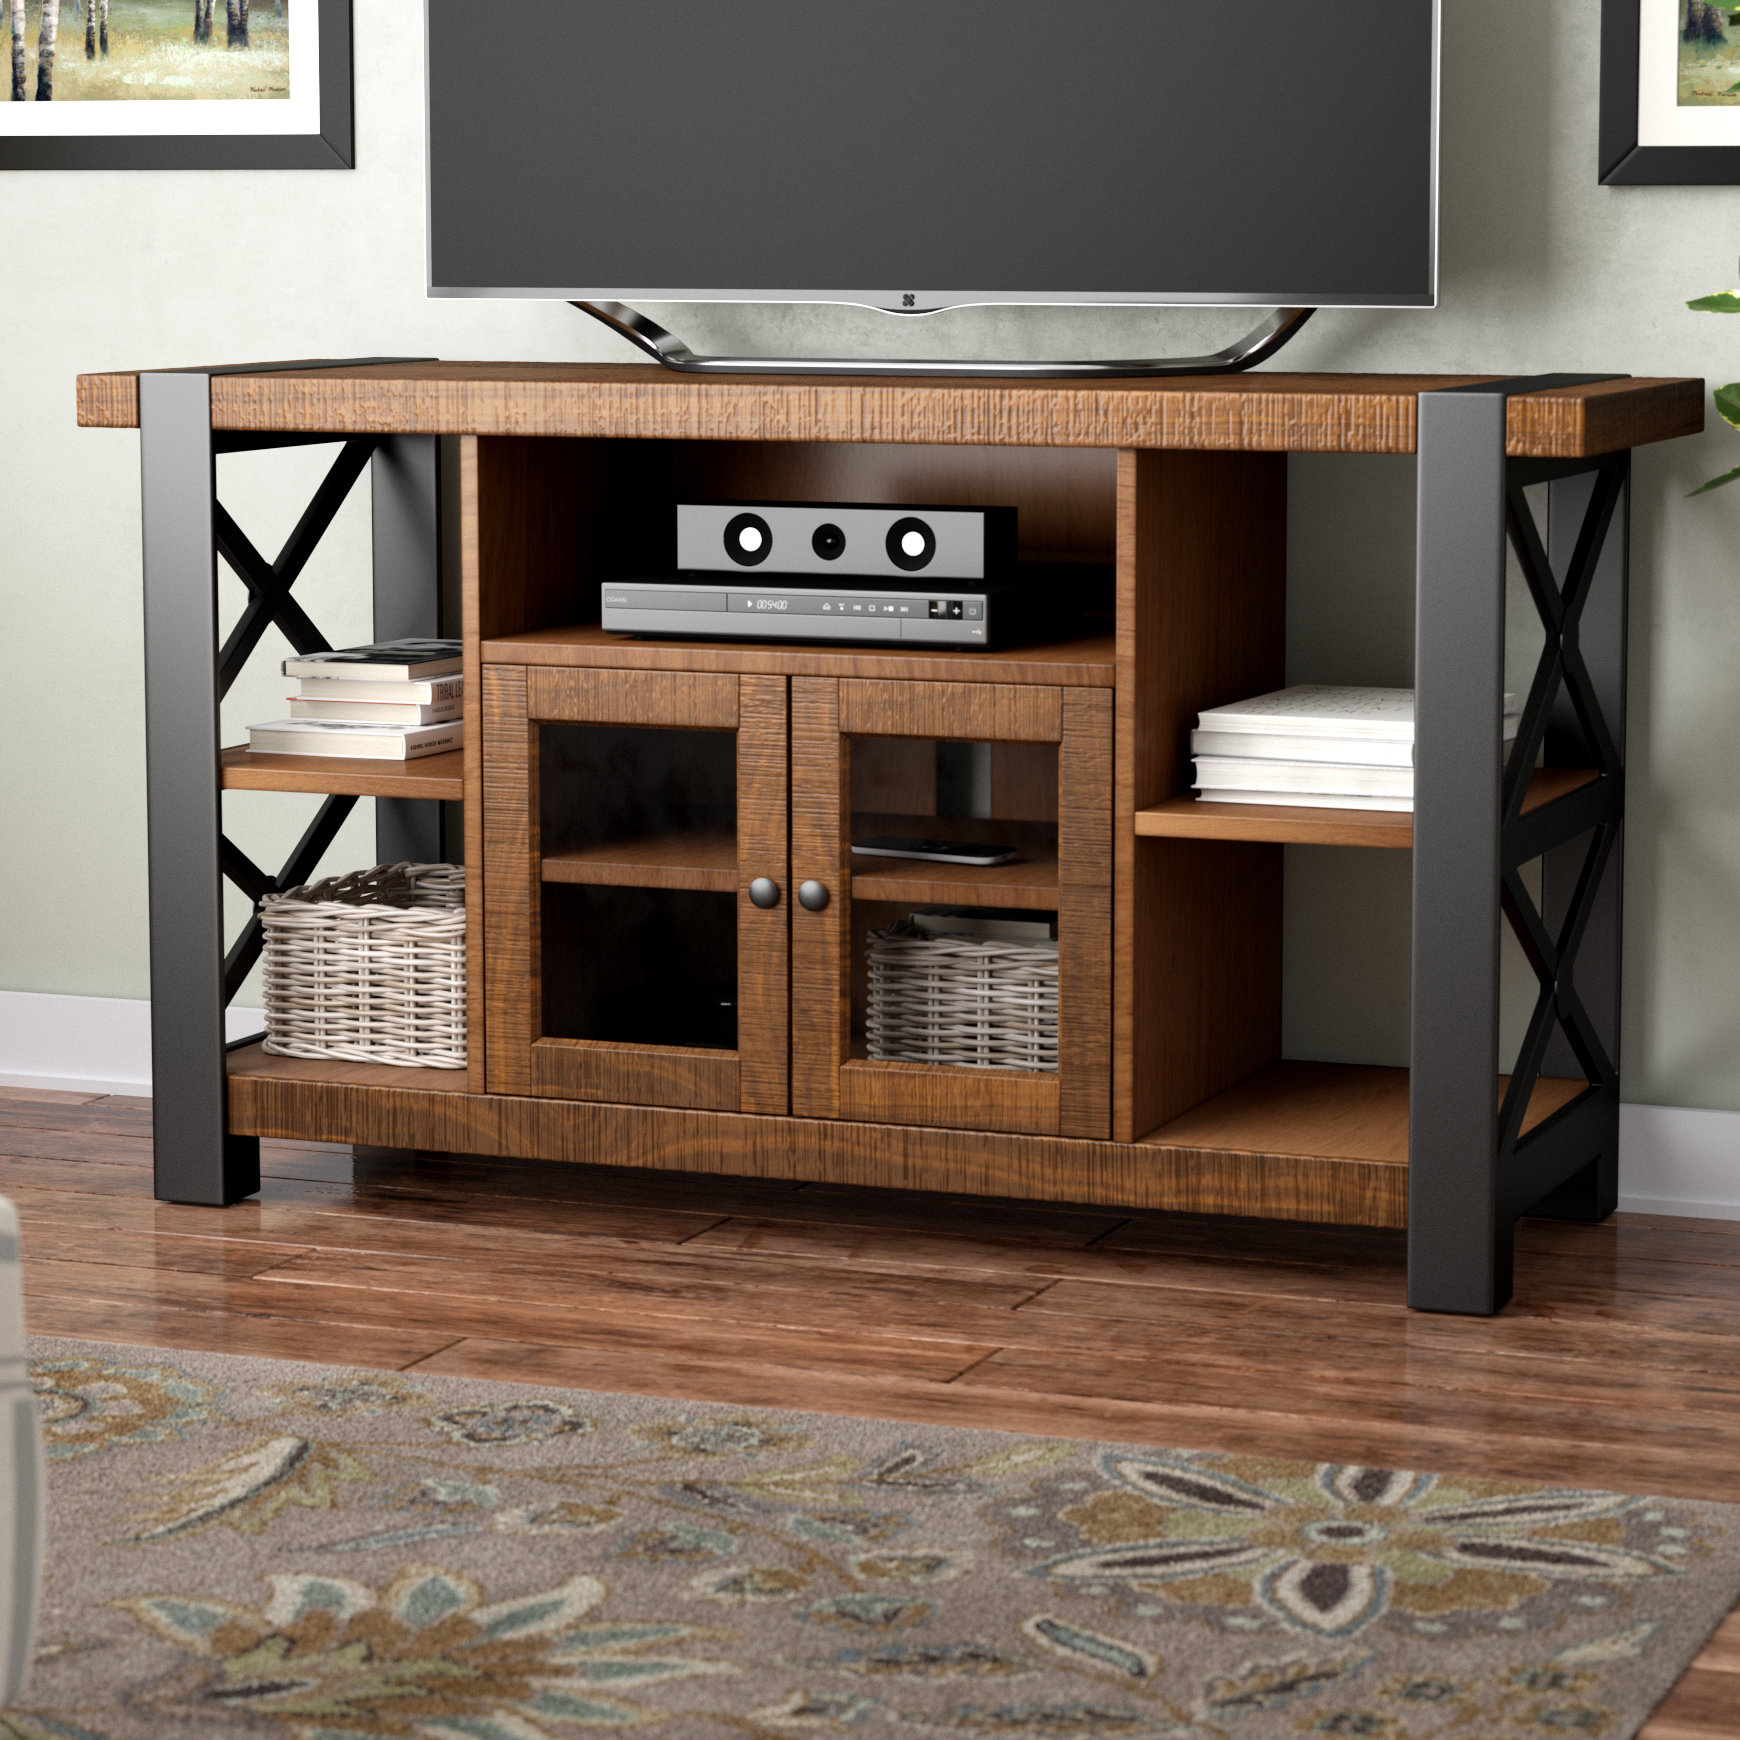 Tv Stands & Entertainment Centers You'll Love | Wayfair Inside Sinclair White 74 Inch Tv Stands (View 15 of 30)